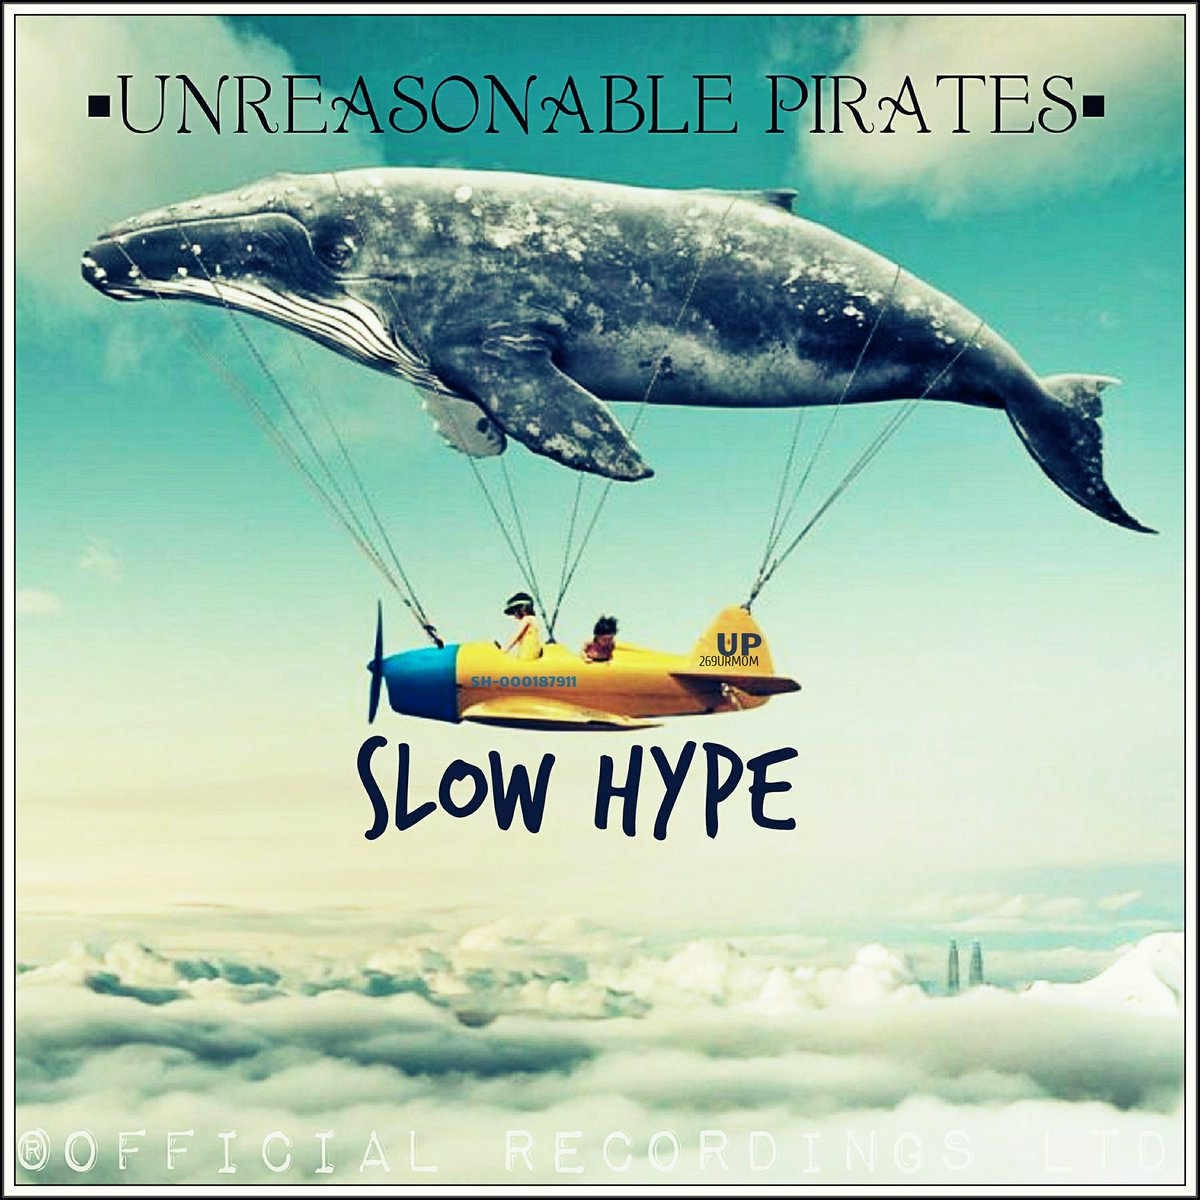 "Unreasonable Pirates - ""Slow Hype"" @AKAIKARATE @RUSHMOREBEATS  Out now @Bandcamp ⬇  https://t.co/cvW5d7hg78  #NewMusicAlert #NewMusic2020 #HipHop #Rap #Boombap #BeatTape #Beats #OFFICIAL  ®   https://t.co/hmYWnawfG9"